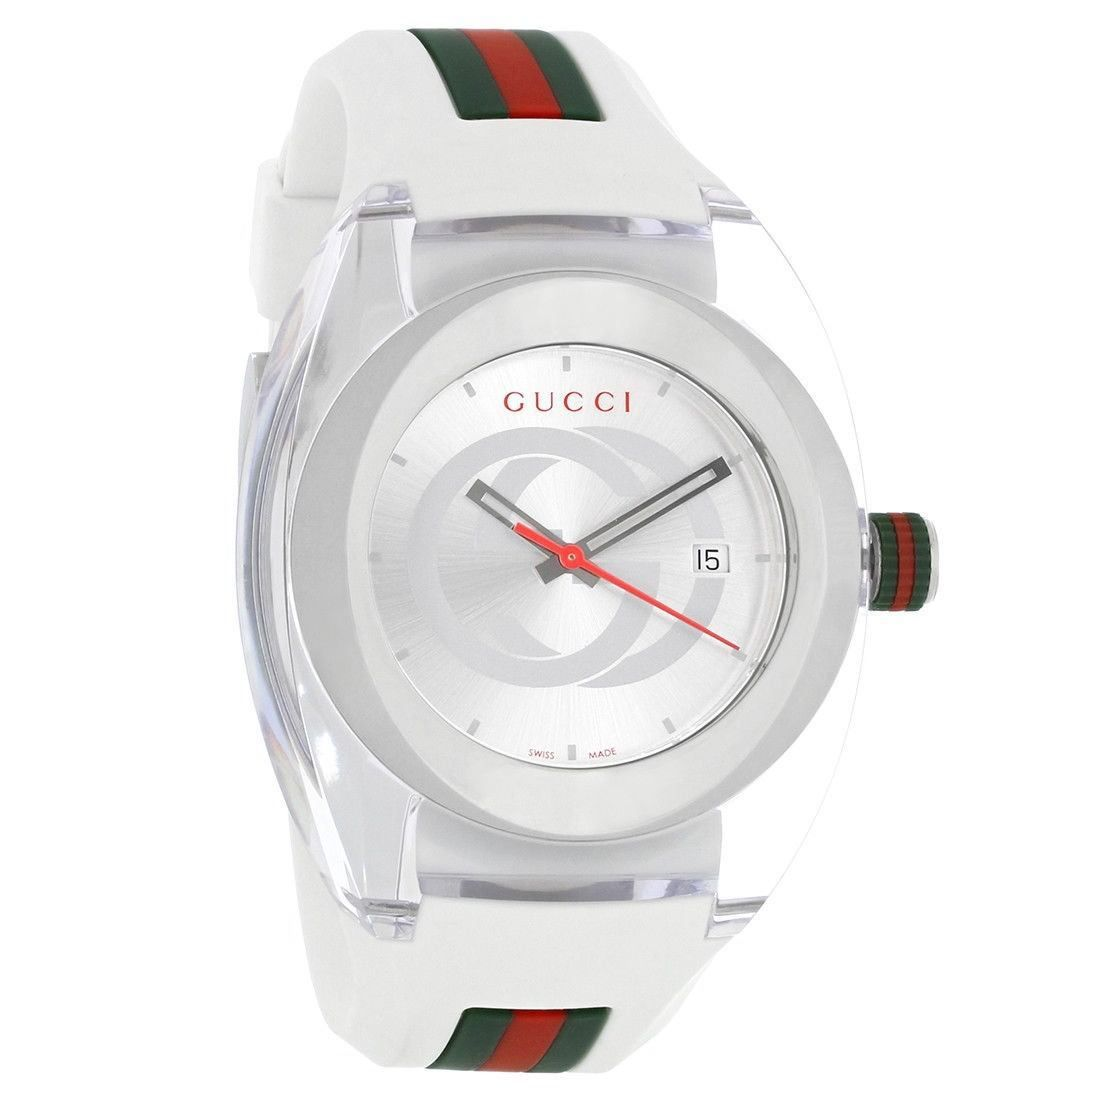 a7ca13c483d Gucci Sync XXL White Green Red Strap Swiss Quartz Watch .